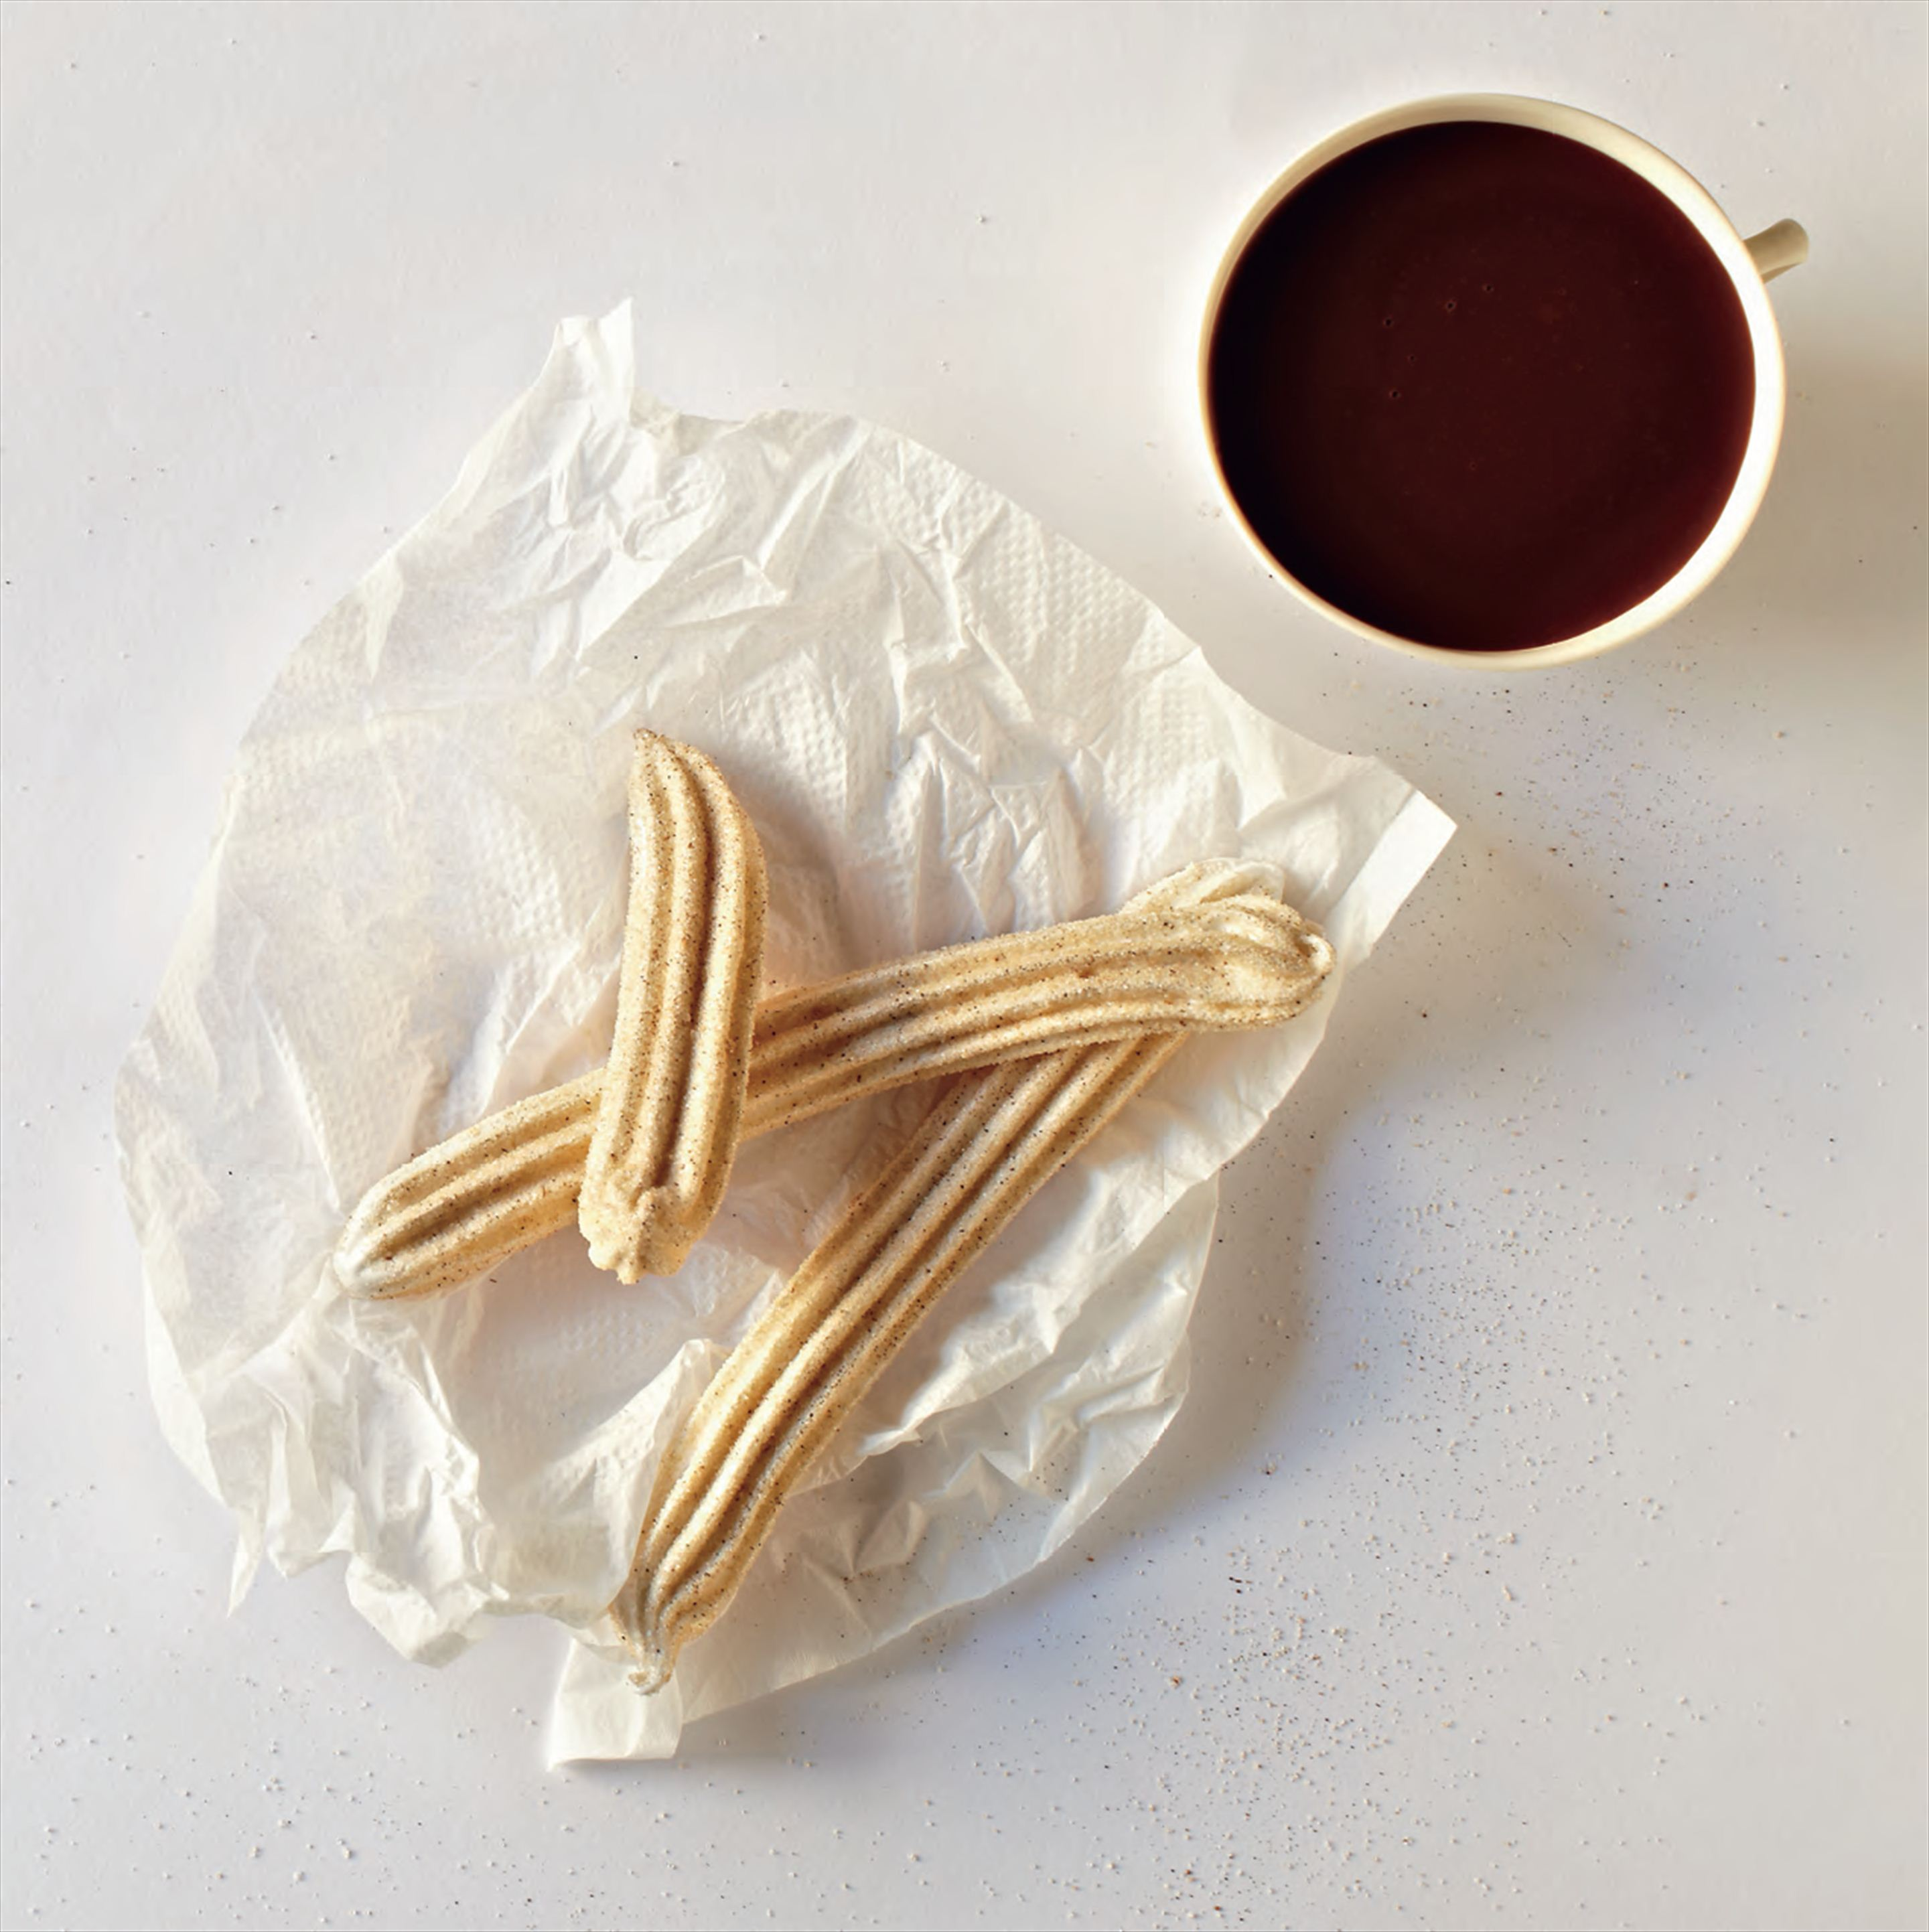 Wicked hot chocolate with churros-style marshmallows